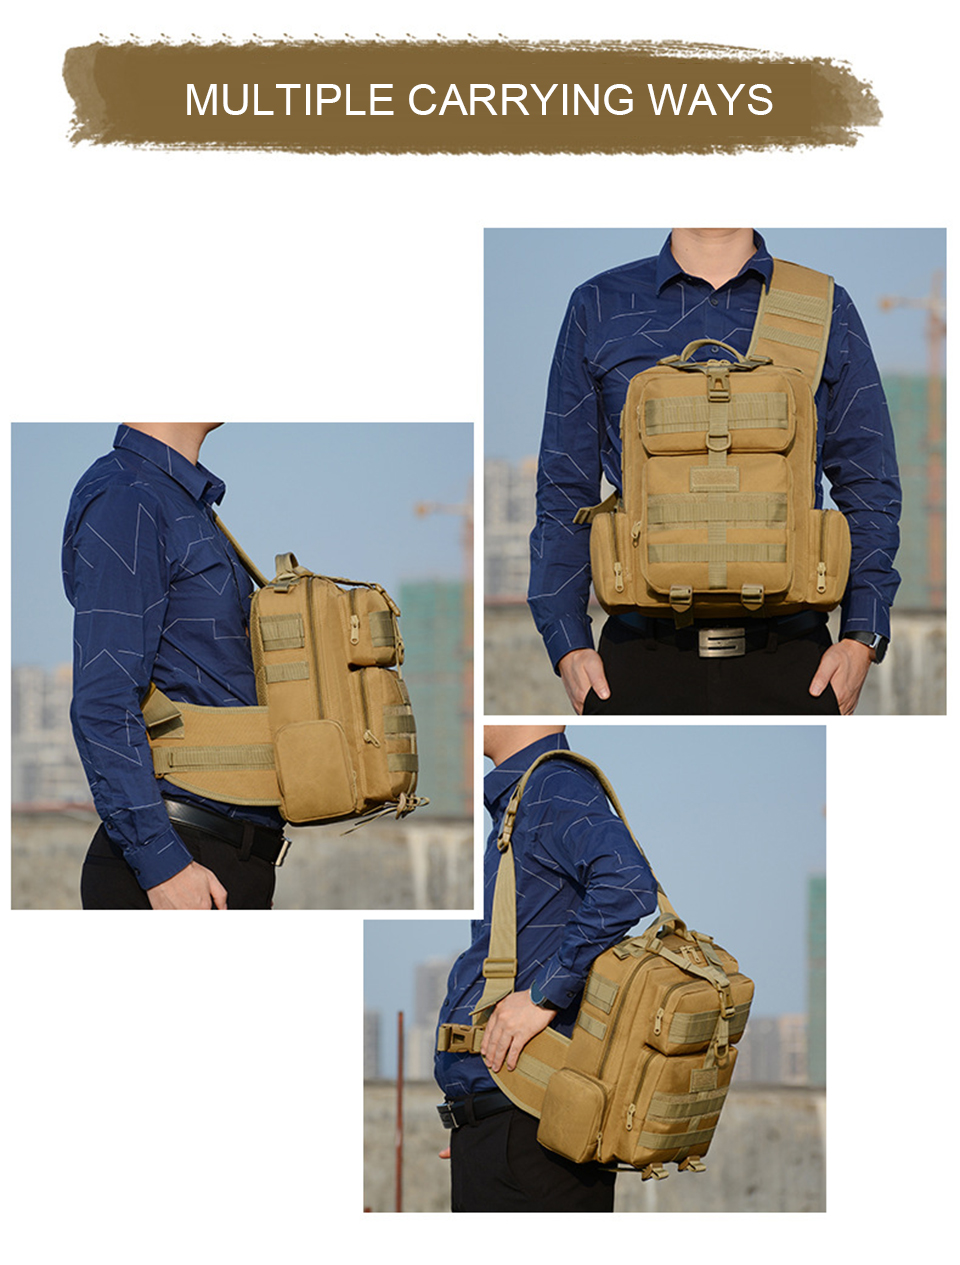 Outdoor-Sports-Military-Bag-Tactical-Bags-Climbing-Shoulder-Bag-Camping-Hiking-Hunting-Chest-Daypack-Molle-Camouflage-Backpack_03